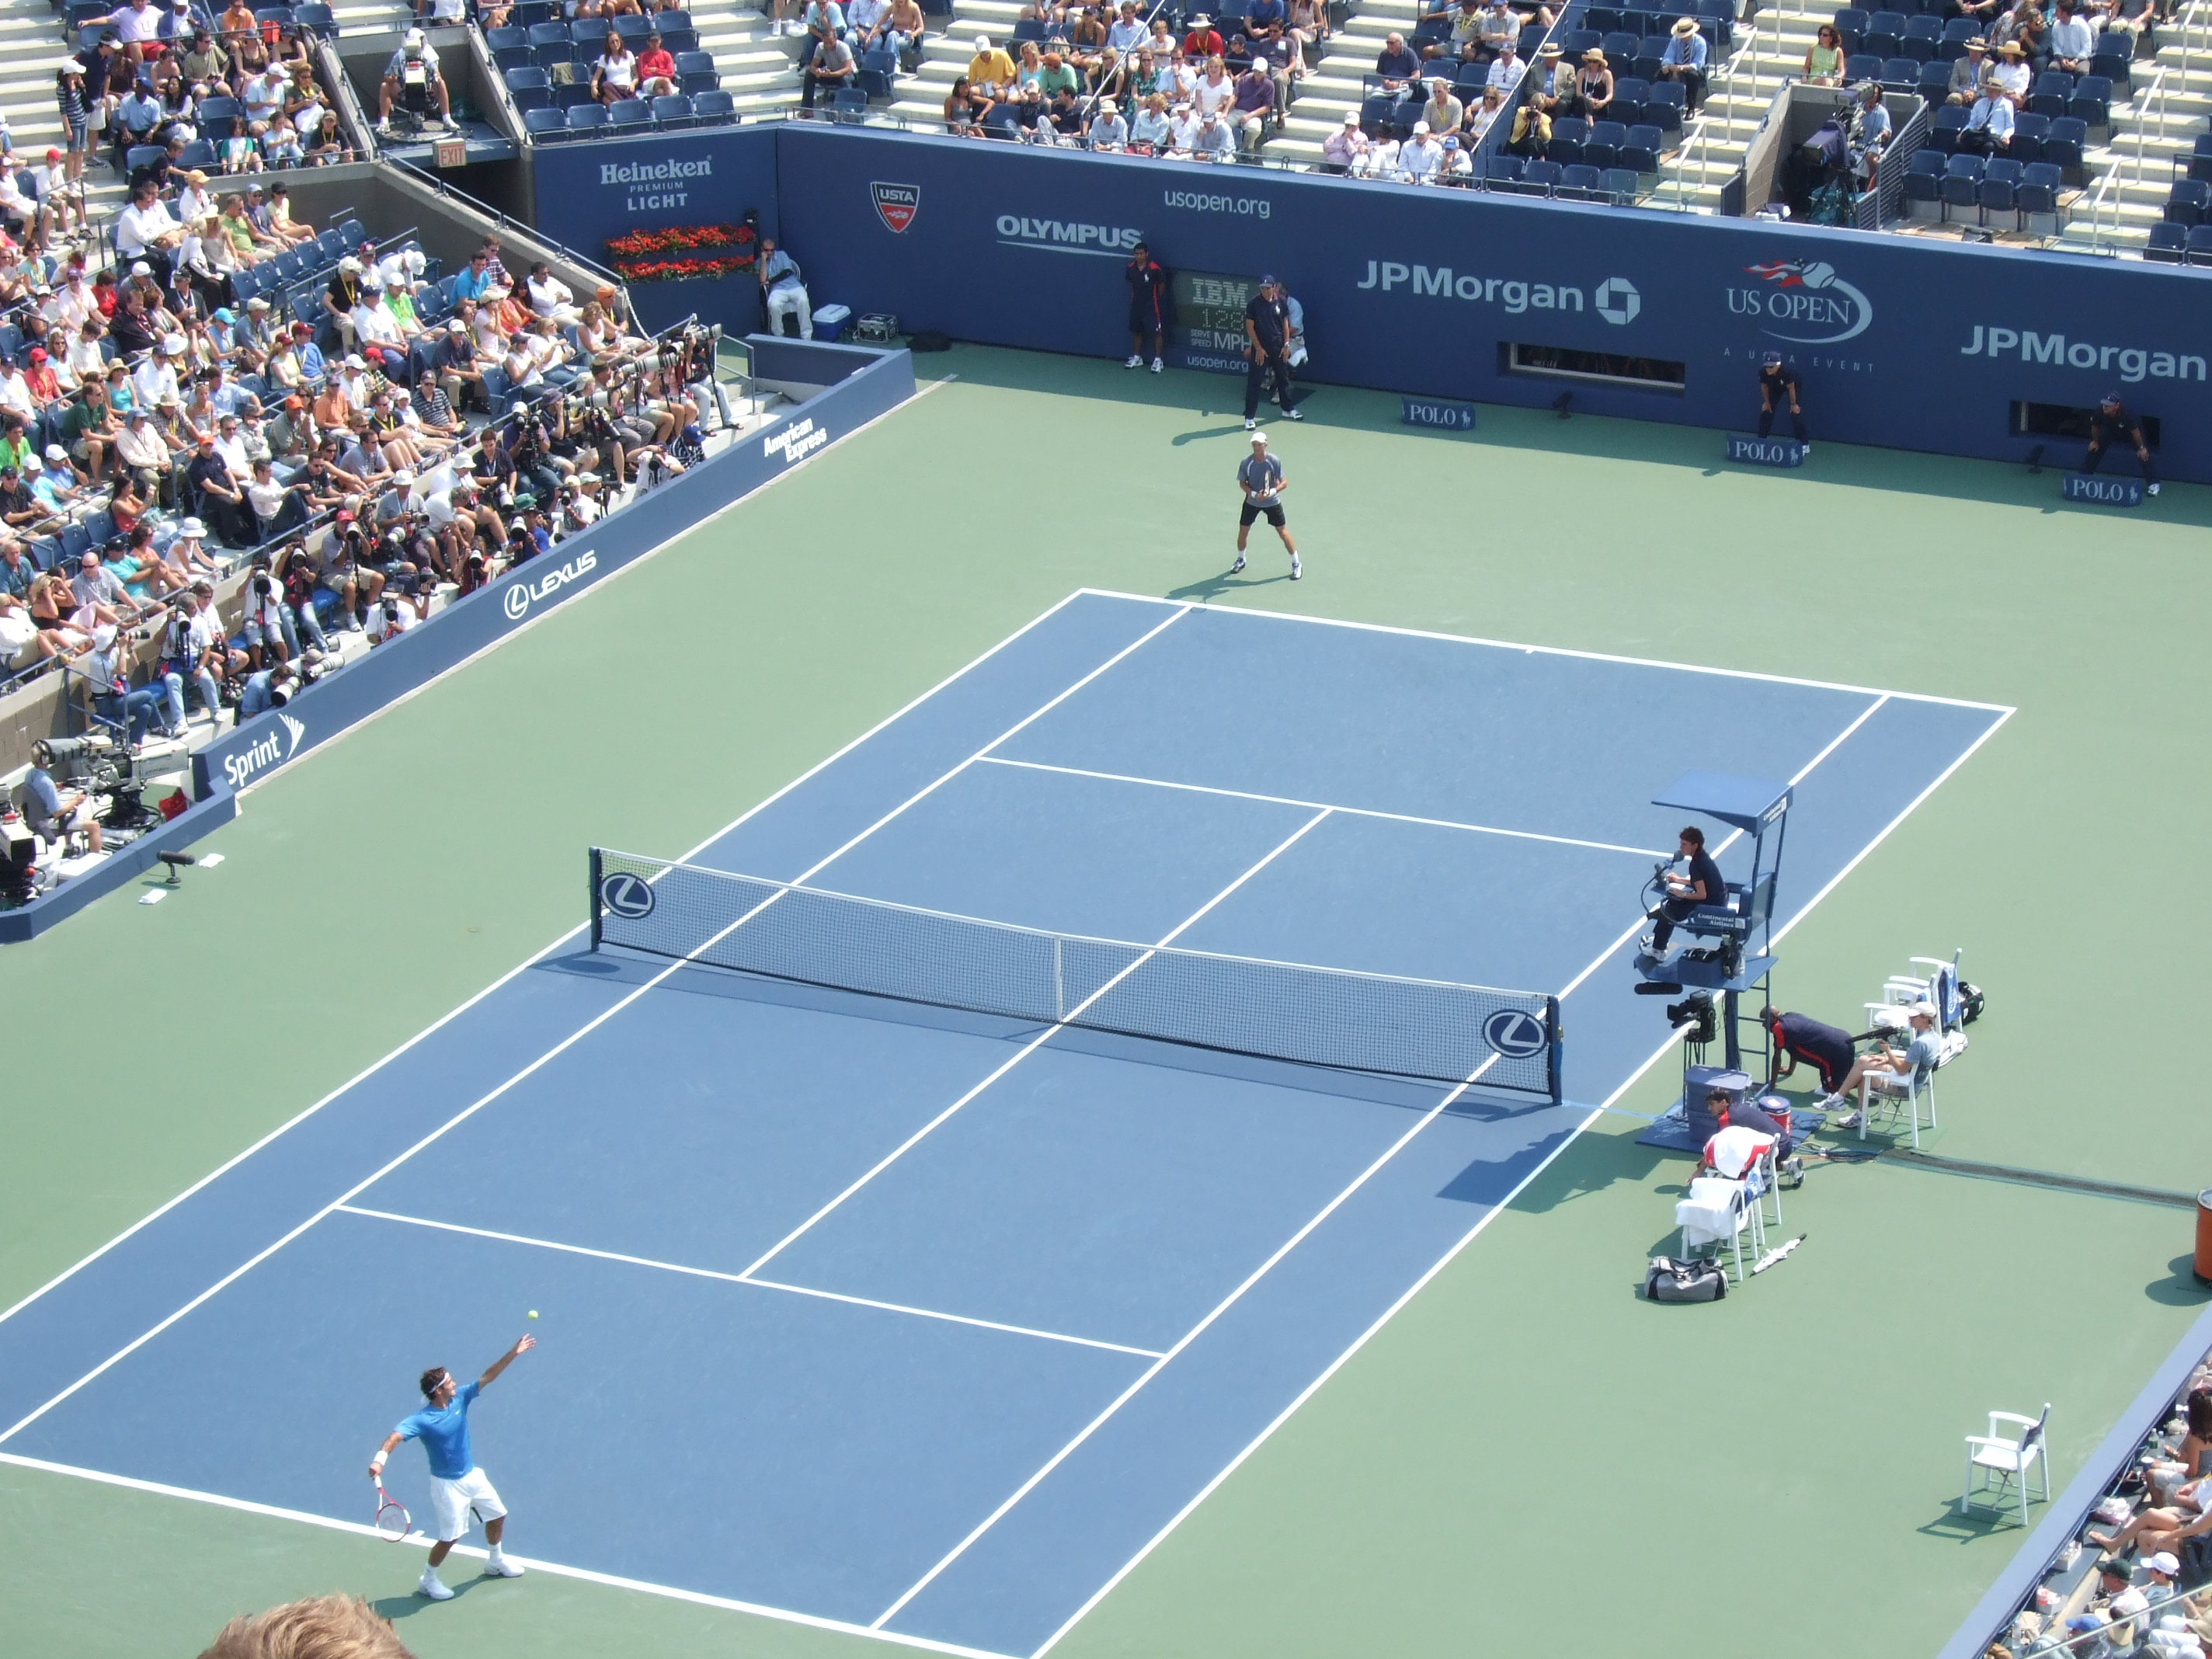 File:Federer vs Davidenko US Open 2006 semis.JPG - Wikimedia Commons